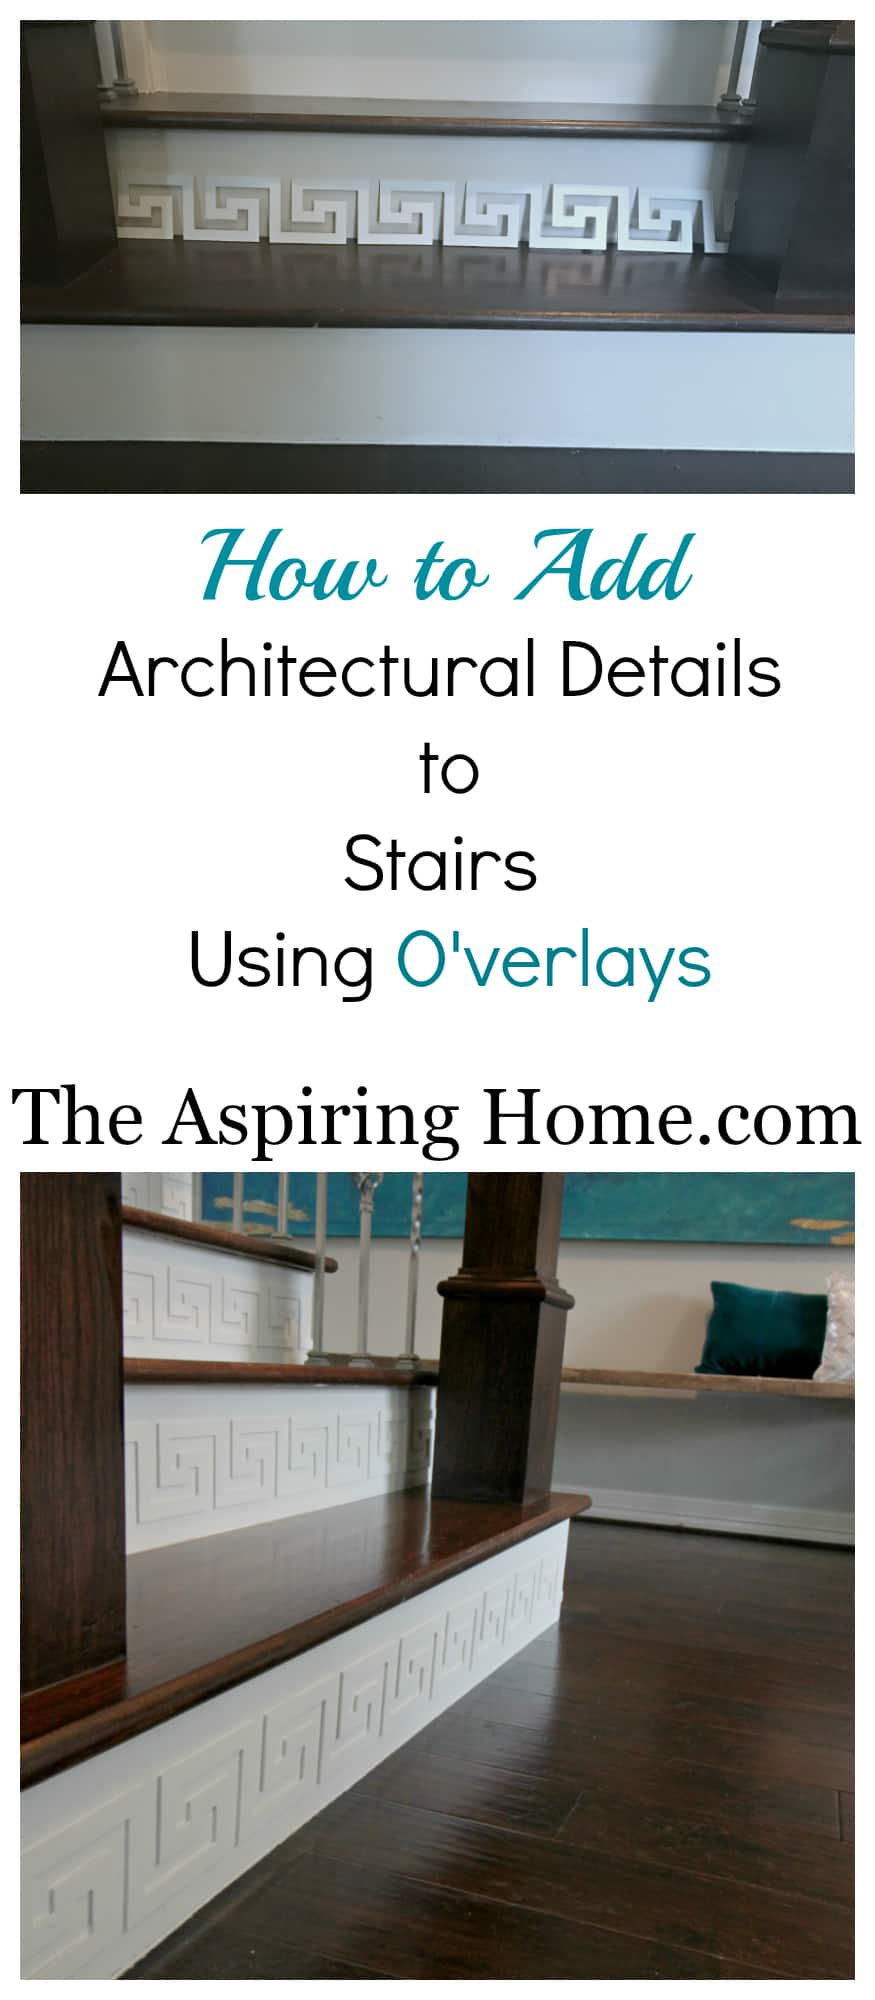 How to add architectural details to stairs using Overlays